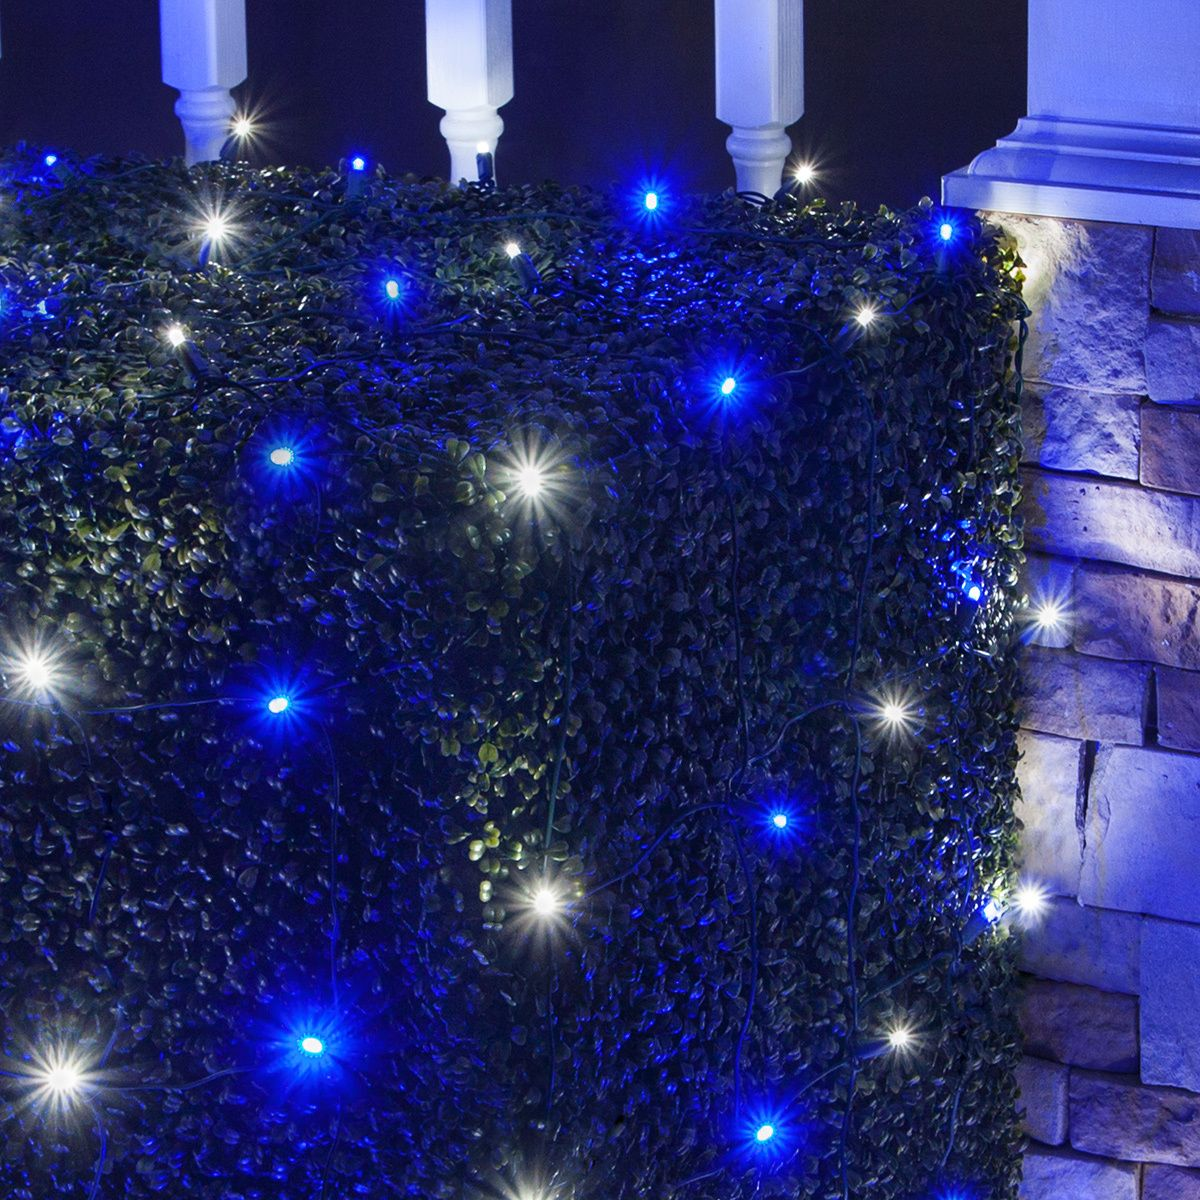 easy to use led net lights with cool white blue 5mm bulbs